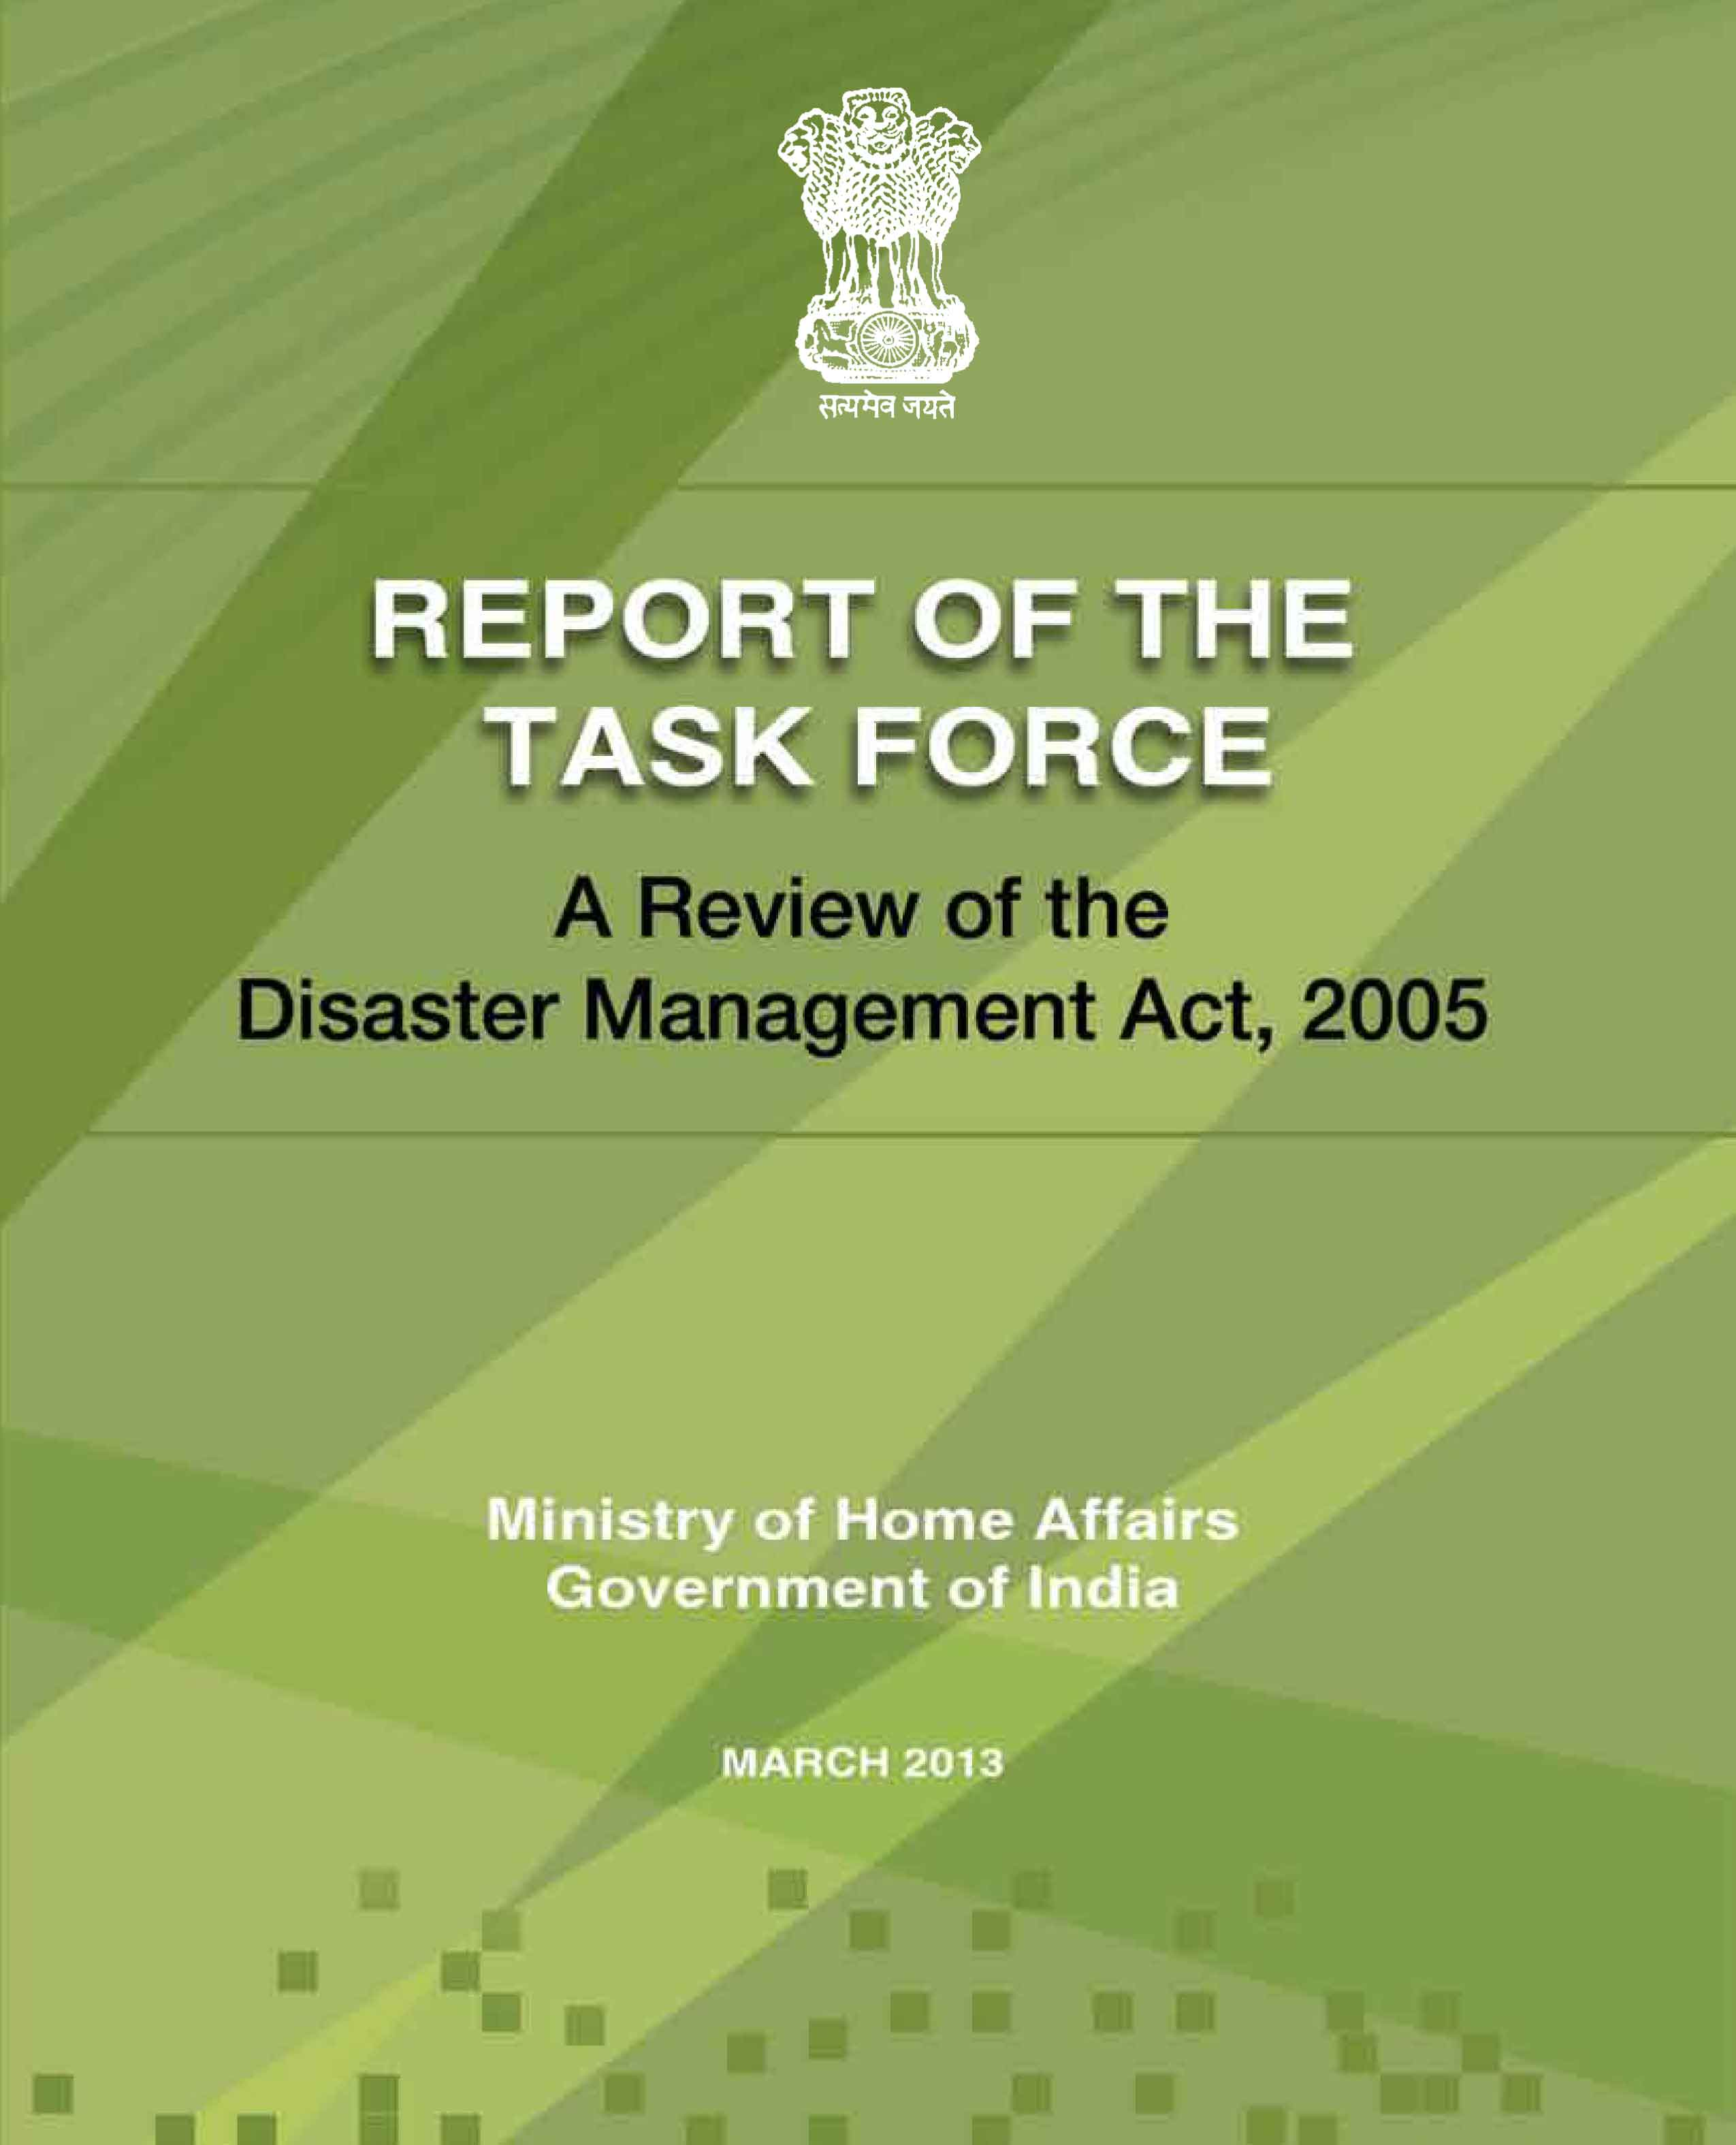 Essay on disaster management in india 2013